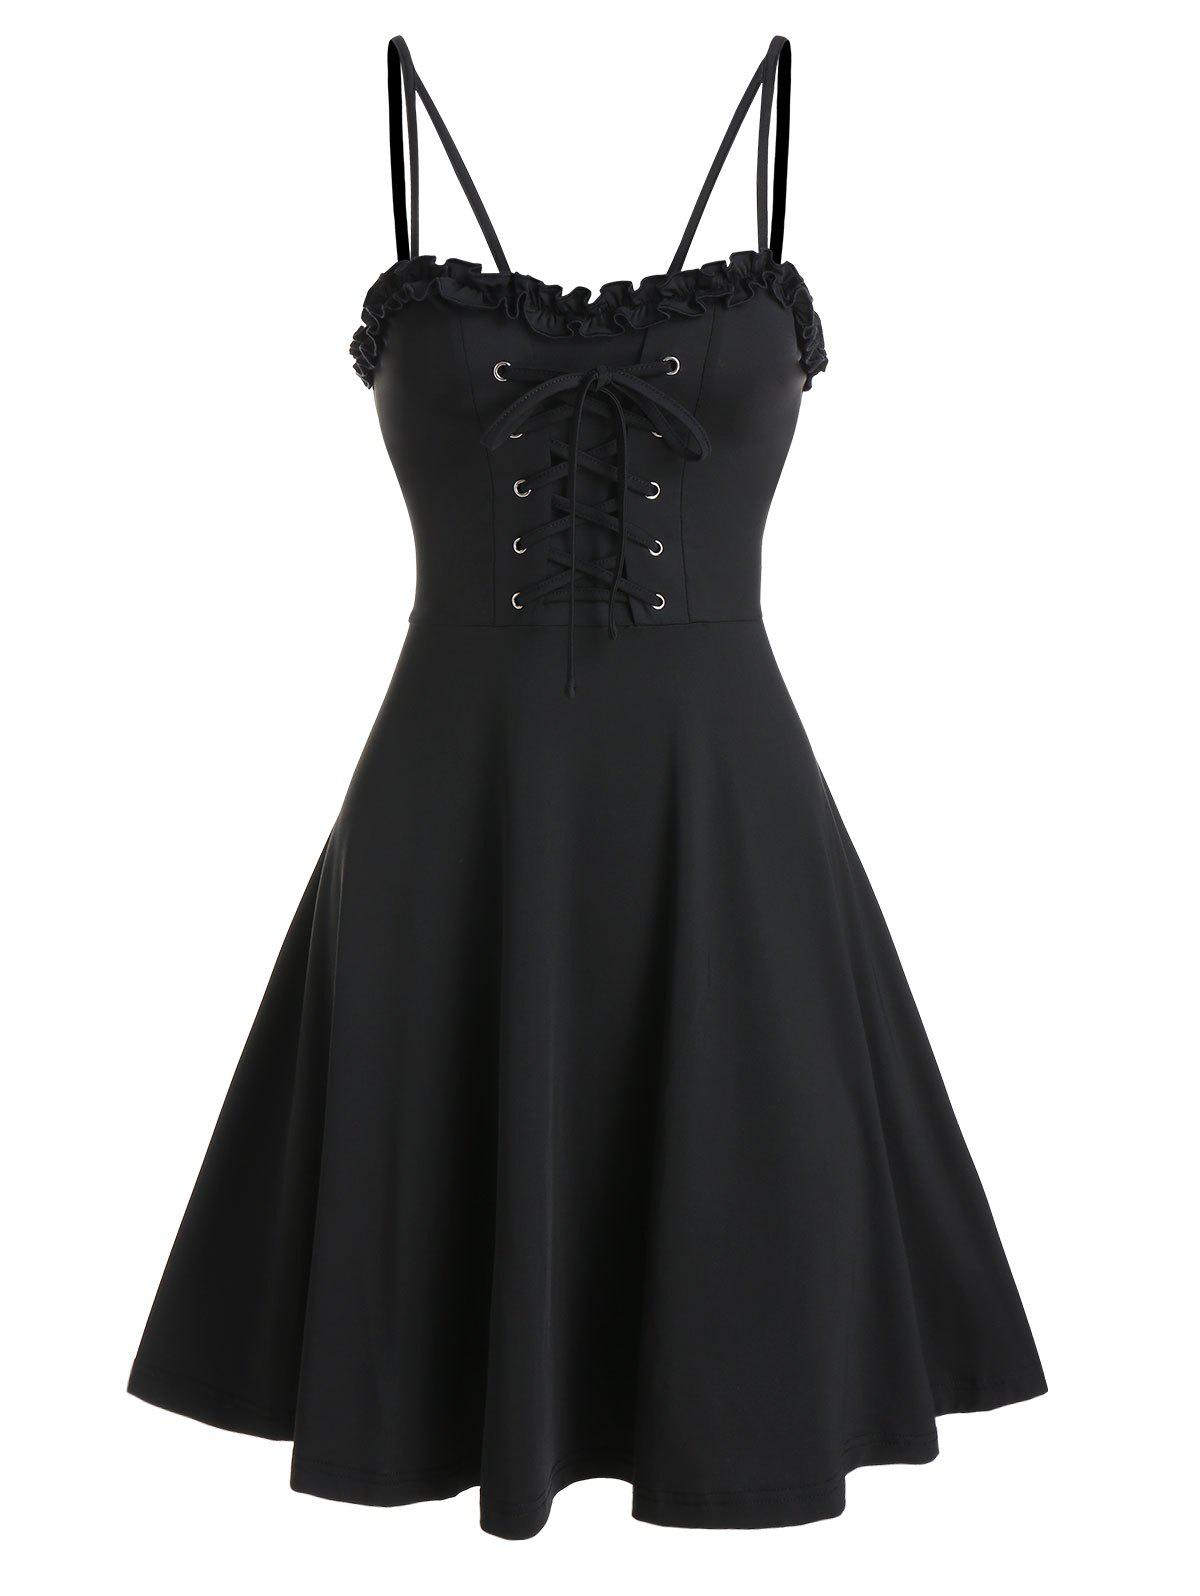 Spaghetti Strap Lace-up Front Ruffle Dress - BLACK 3XL